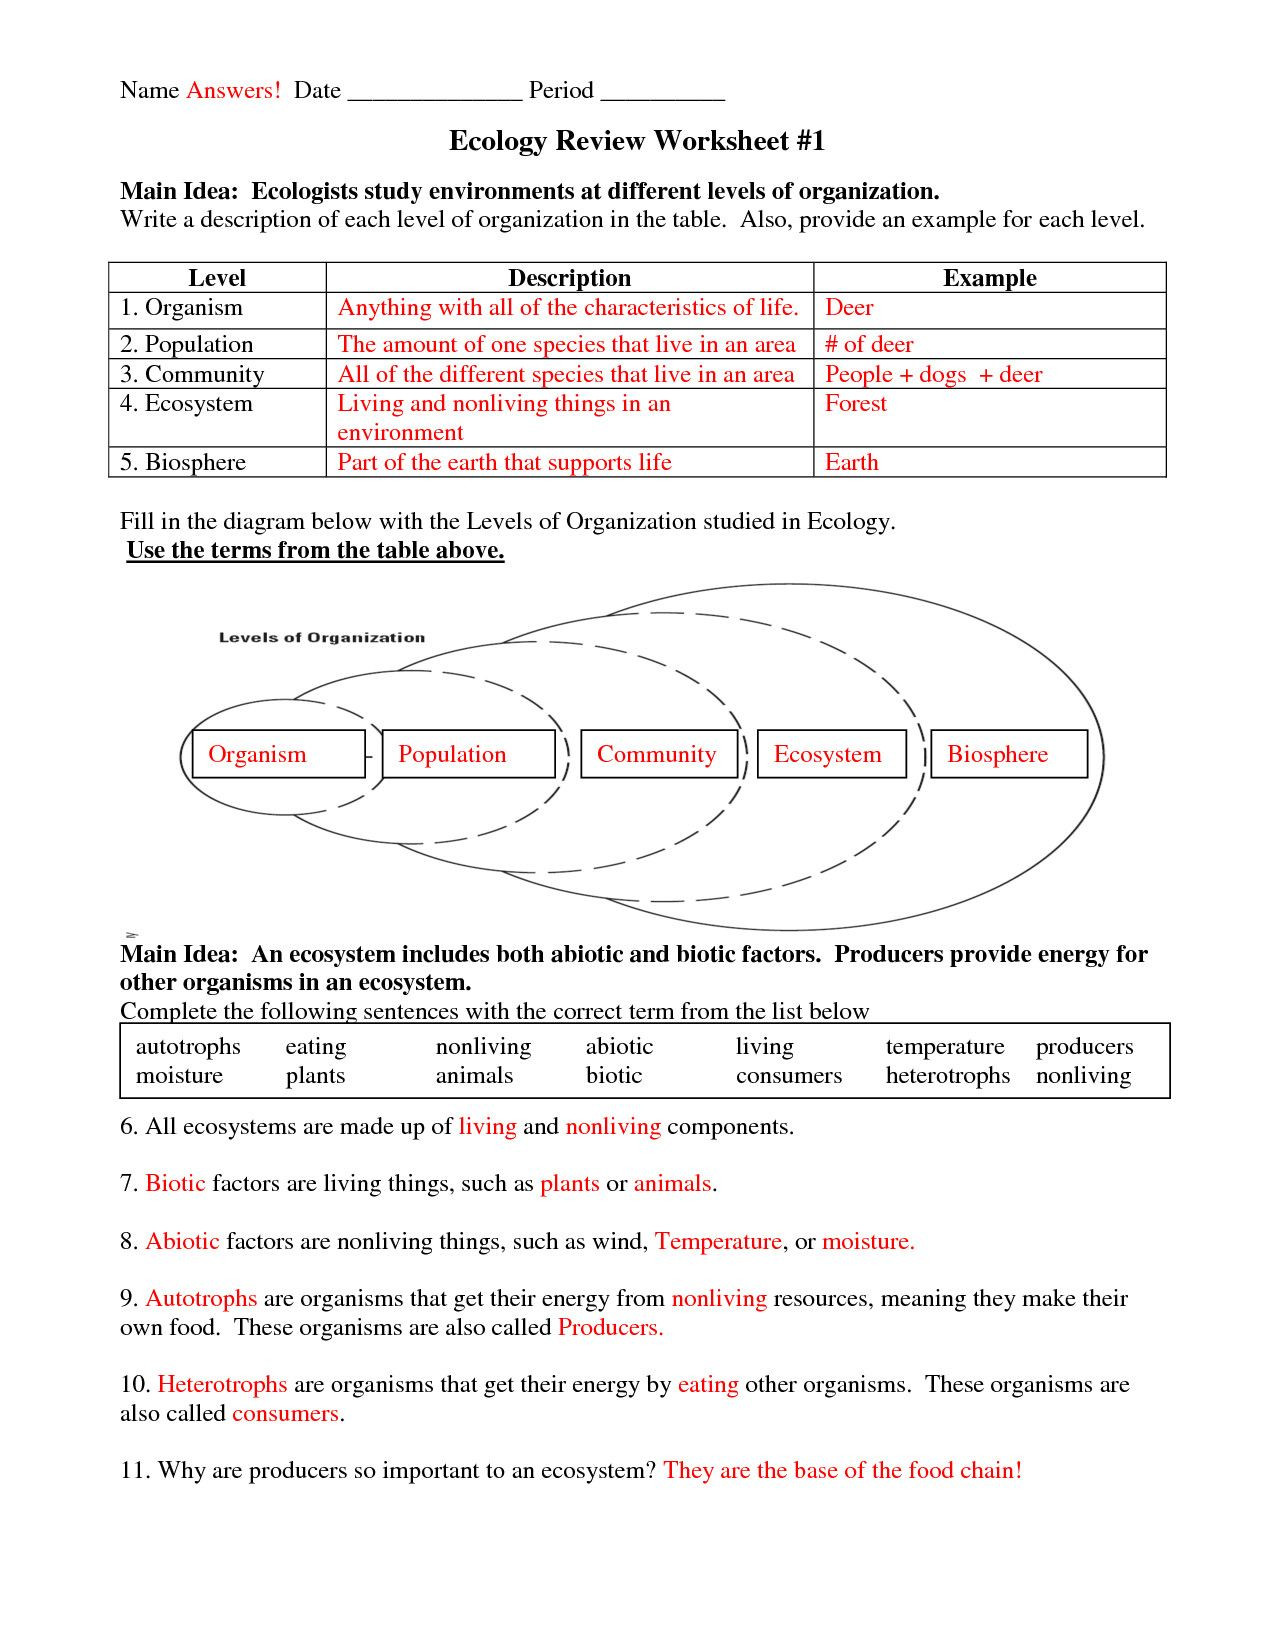 3rd Grade Ecosystem Worksheets Multi Gamer Free 5th Grade Mon Core Math Worksheets